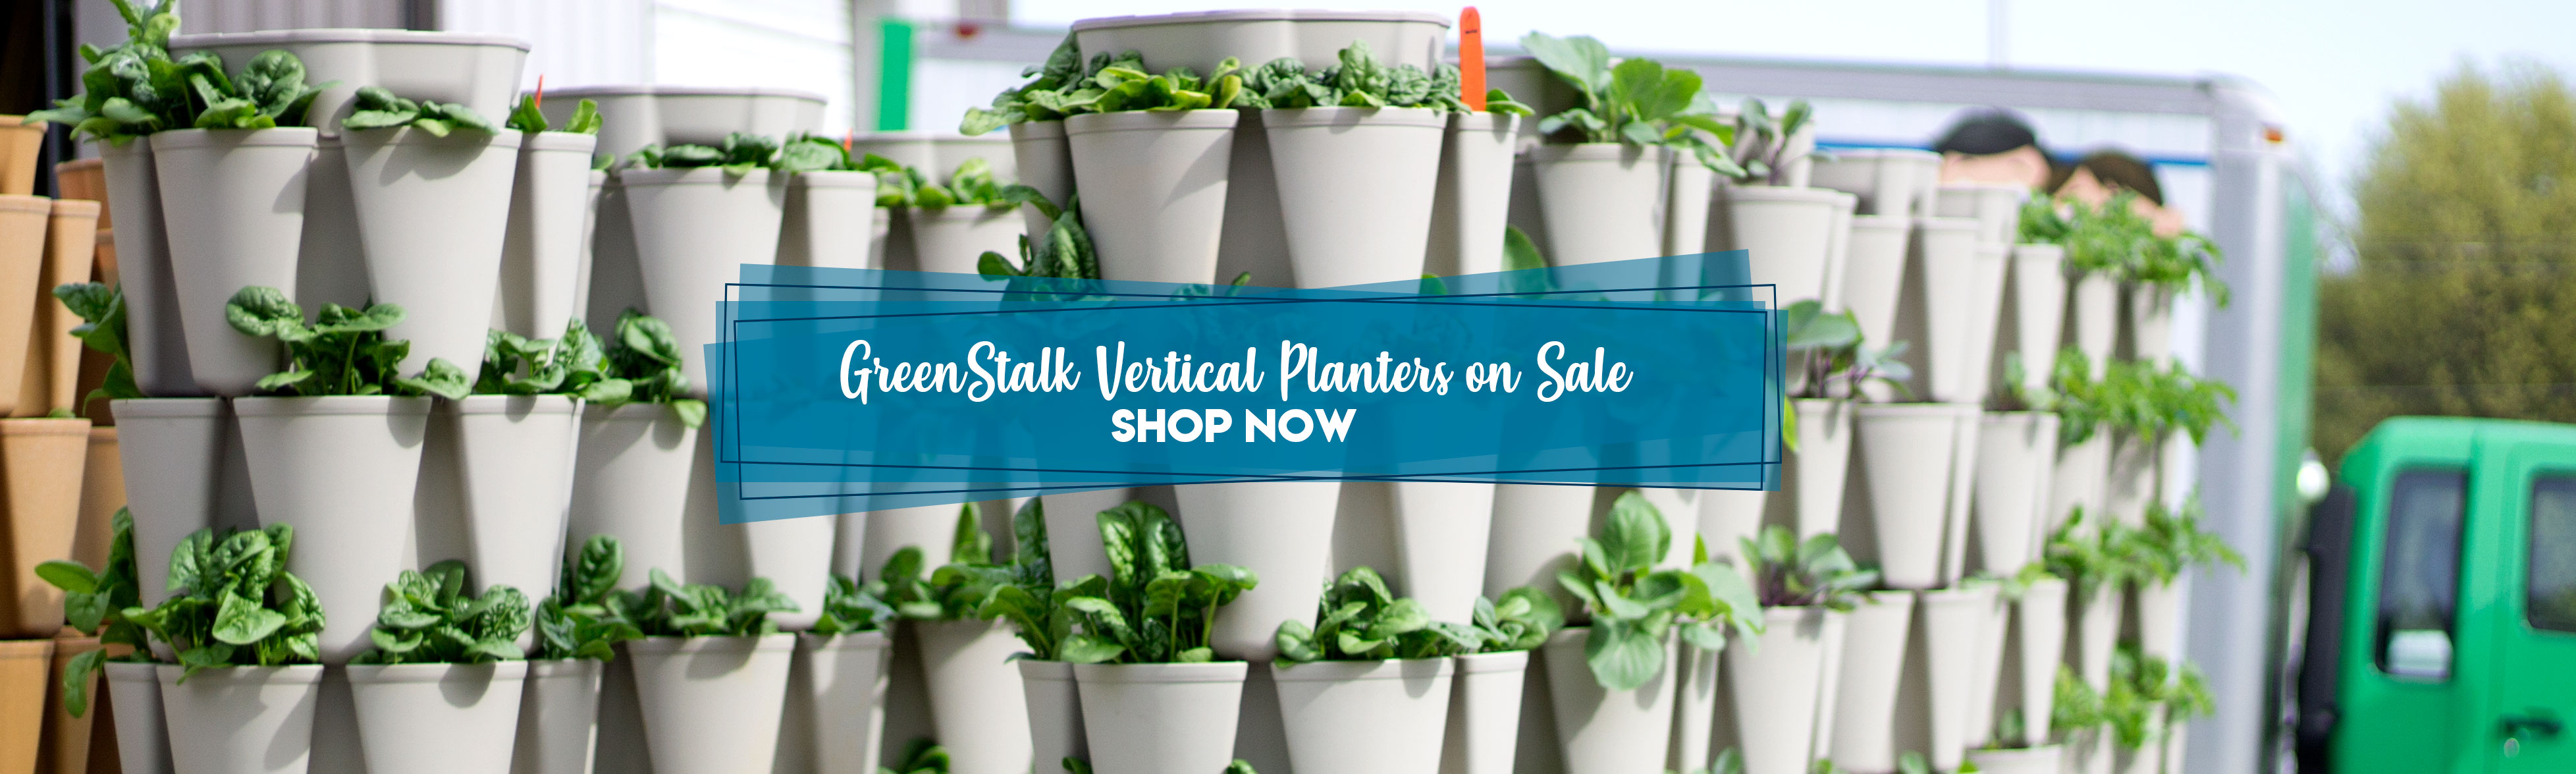 greenstalk-vertical-planters-on-sale-now32.jpg